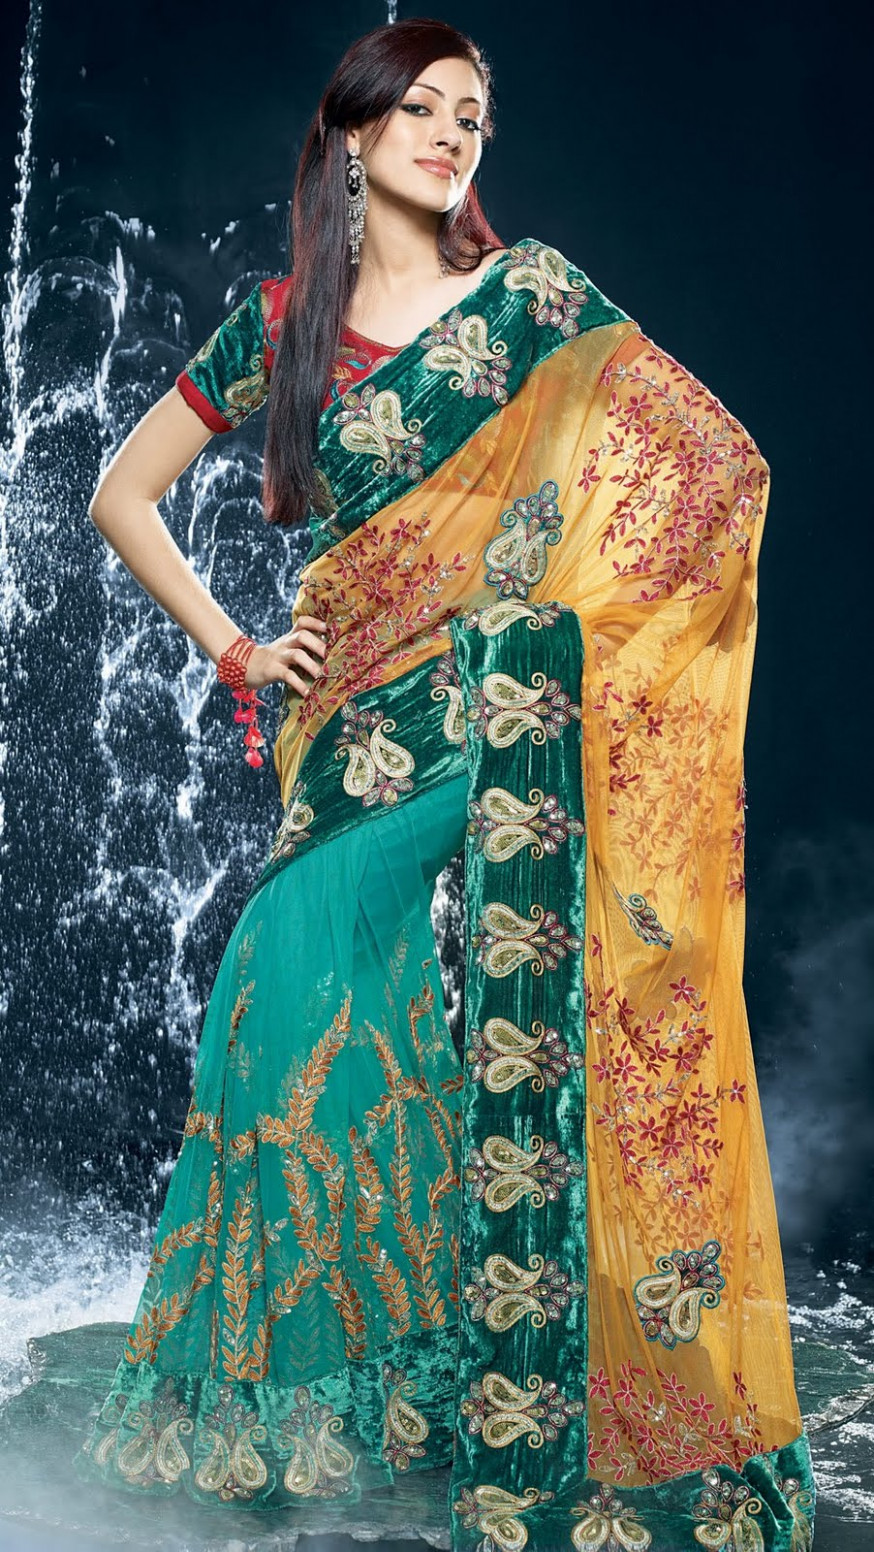 Natural Fashions: Half saree models